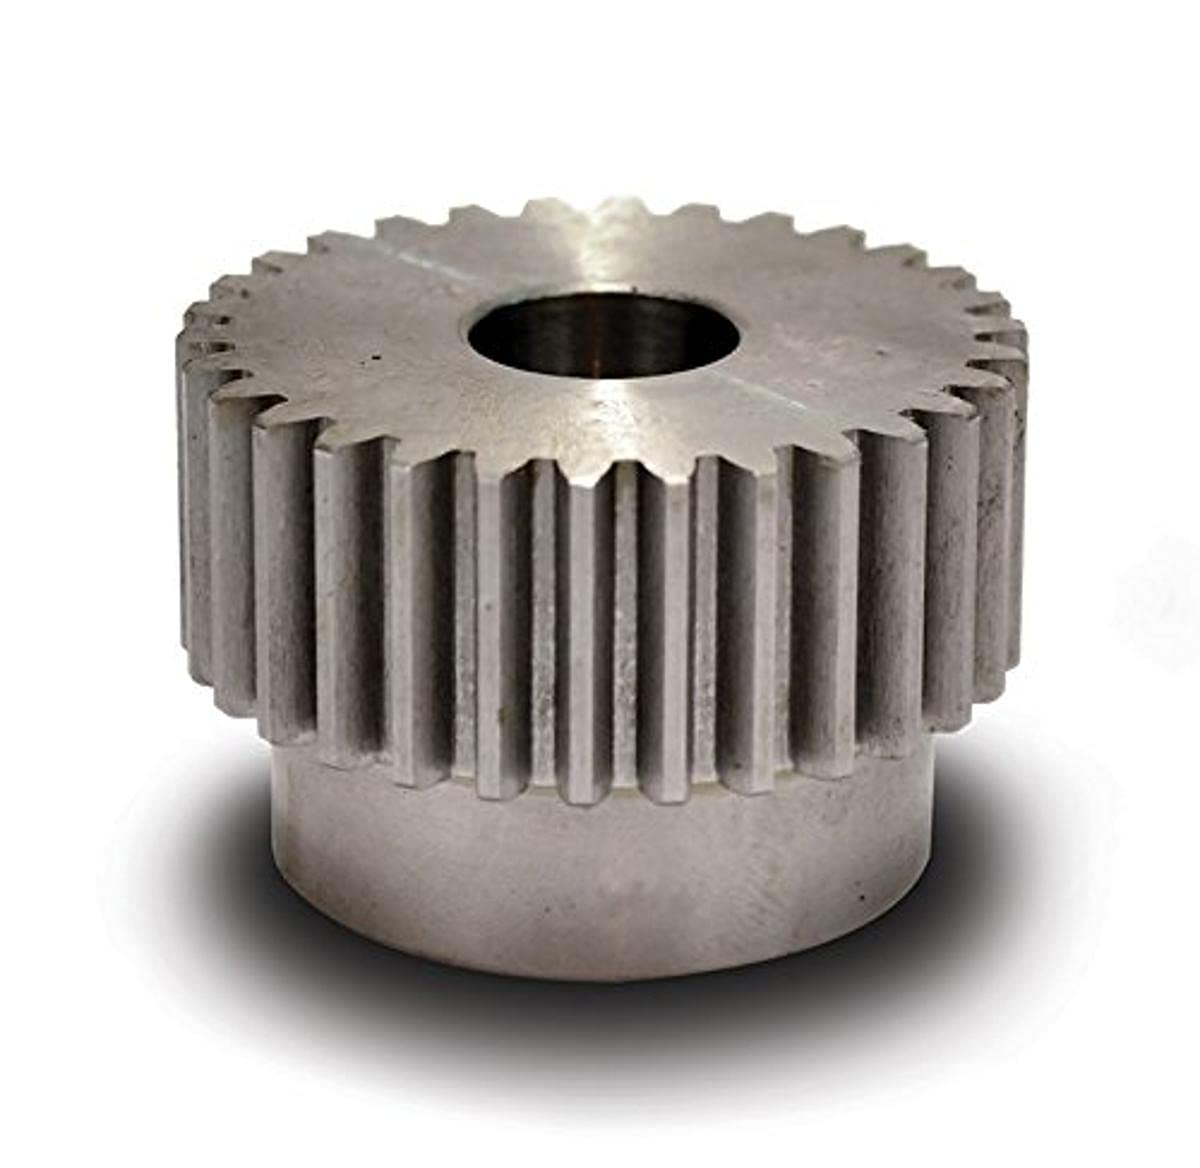 Boston Gear YD15 Spur Steel Inch Bore New arrival Pitch 0.625